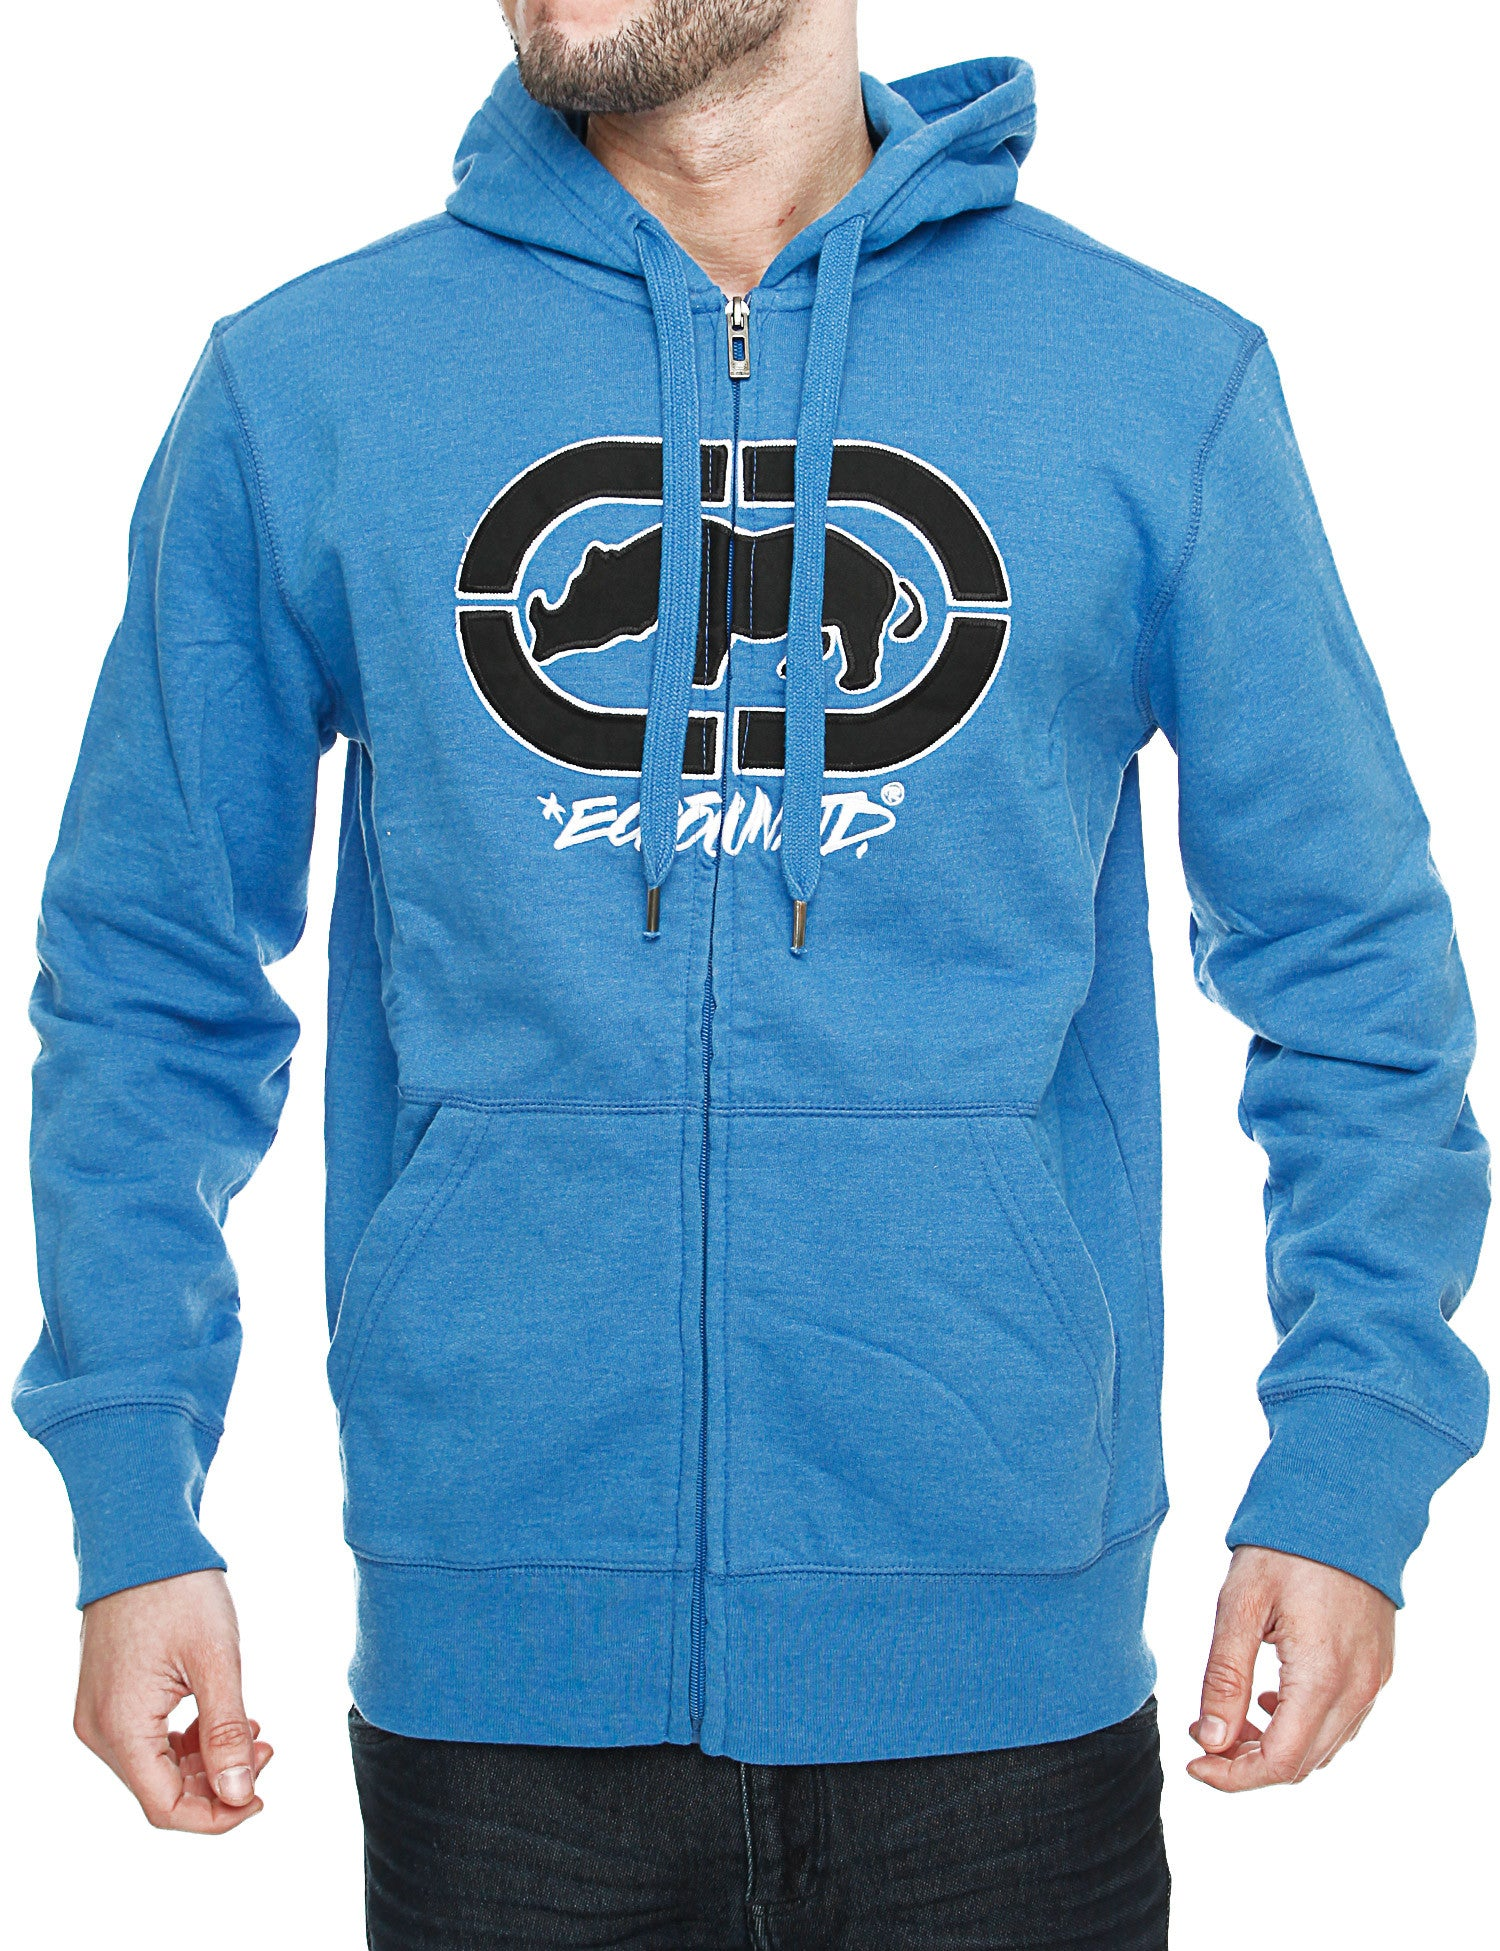 Image of Ecko Cross Country Zip Hoody E7P03959 Azure Blue